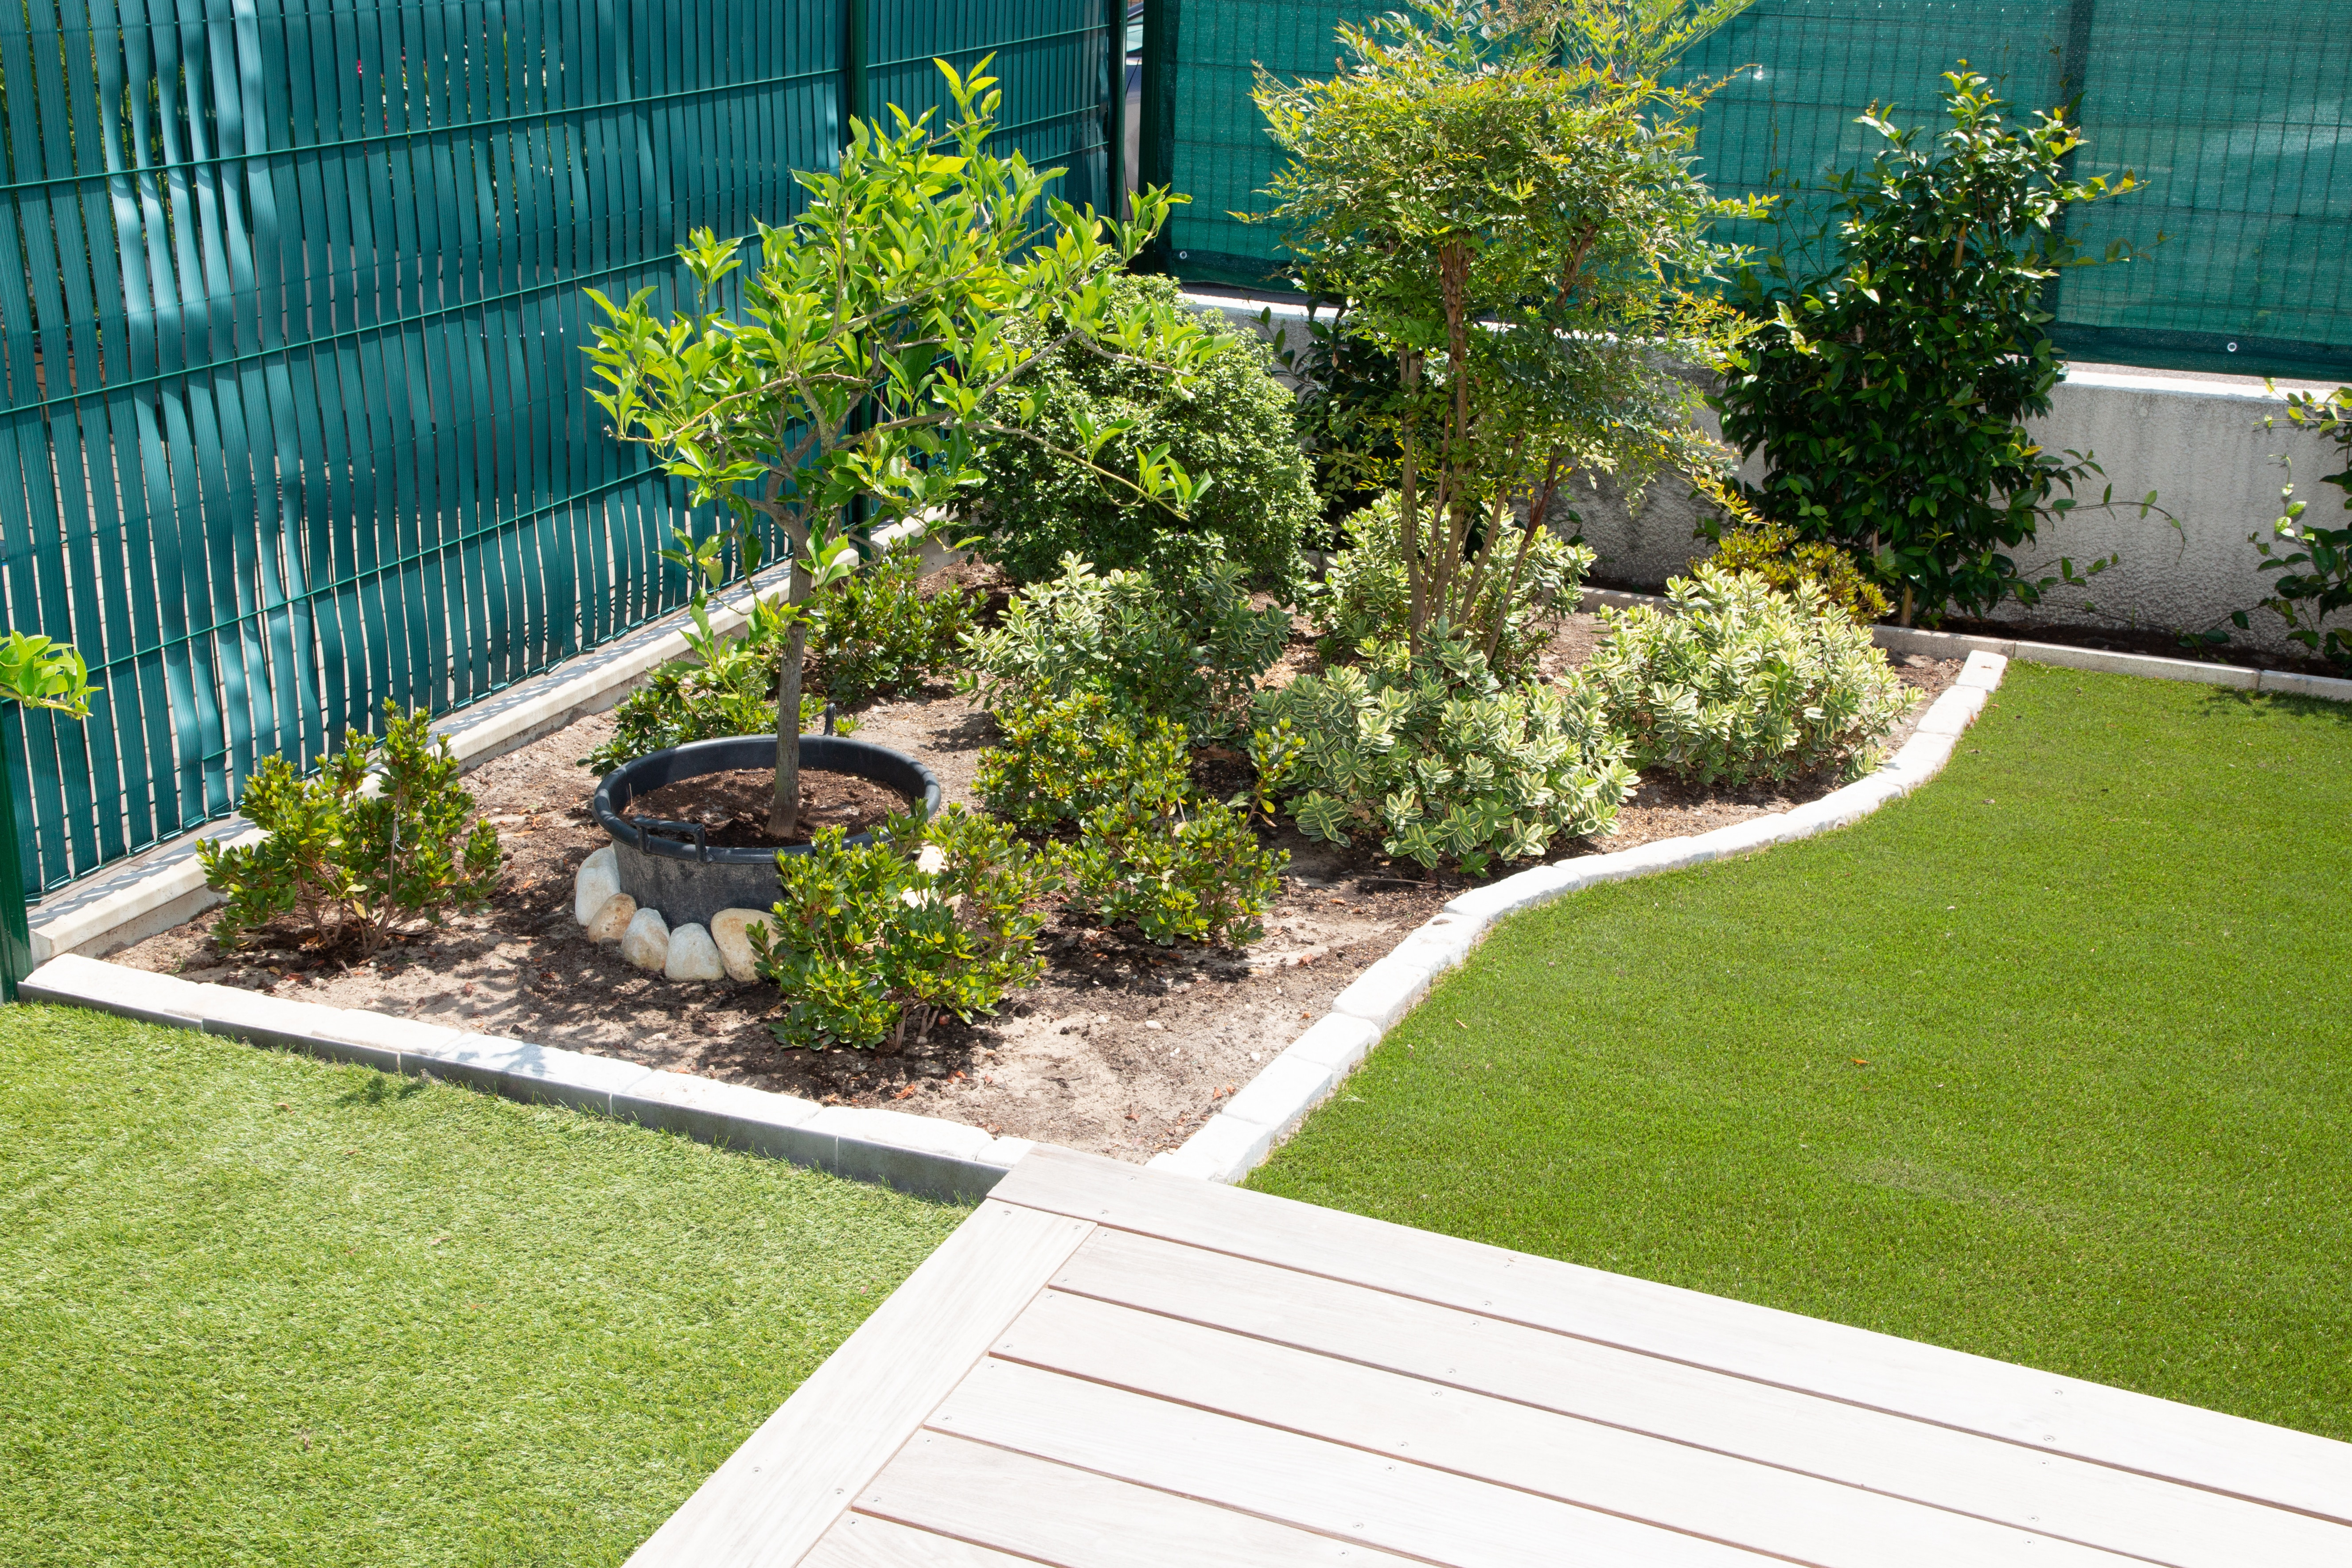 Beautiful natural plant of relax zone in modern garden design